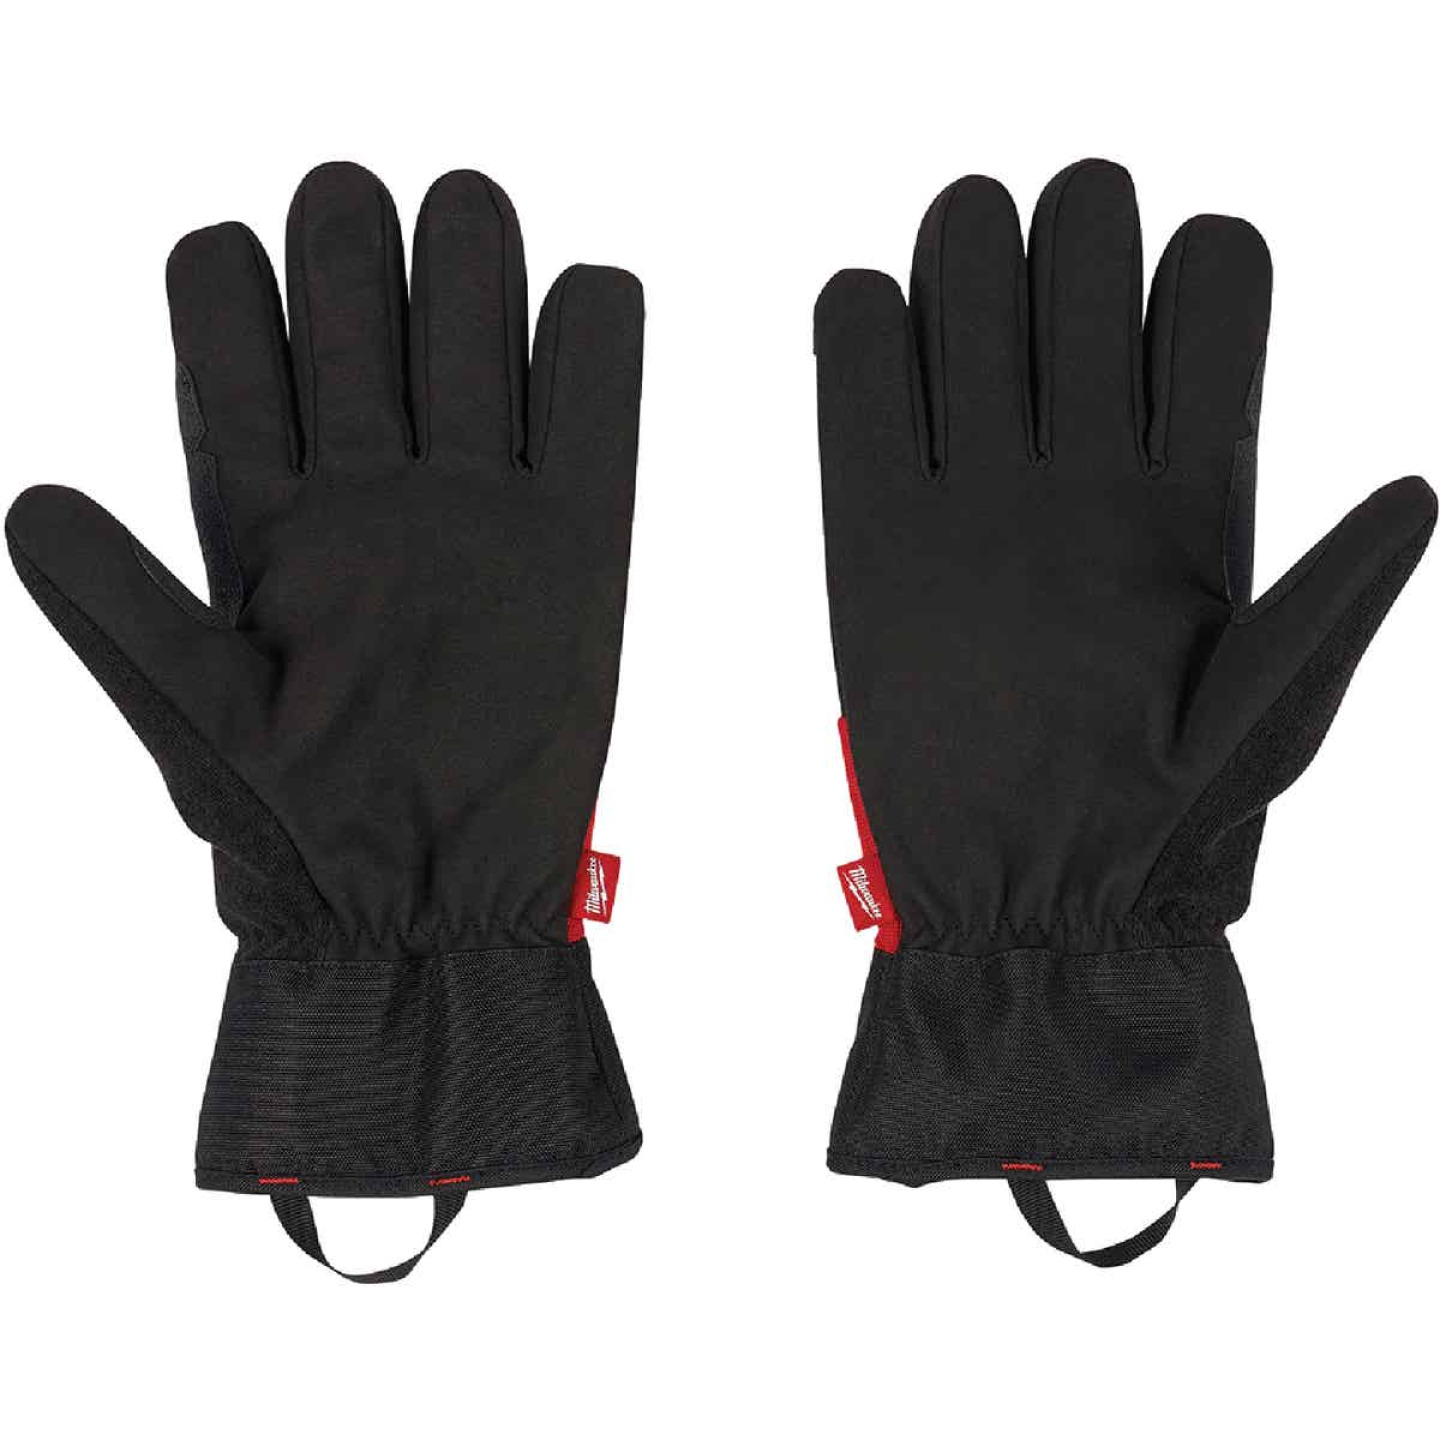 Milwaukee Men's Medium Nylon Winter Performance Glove Image 5